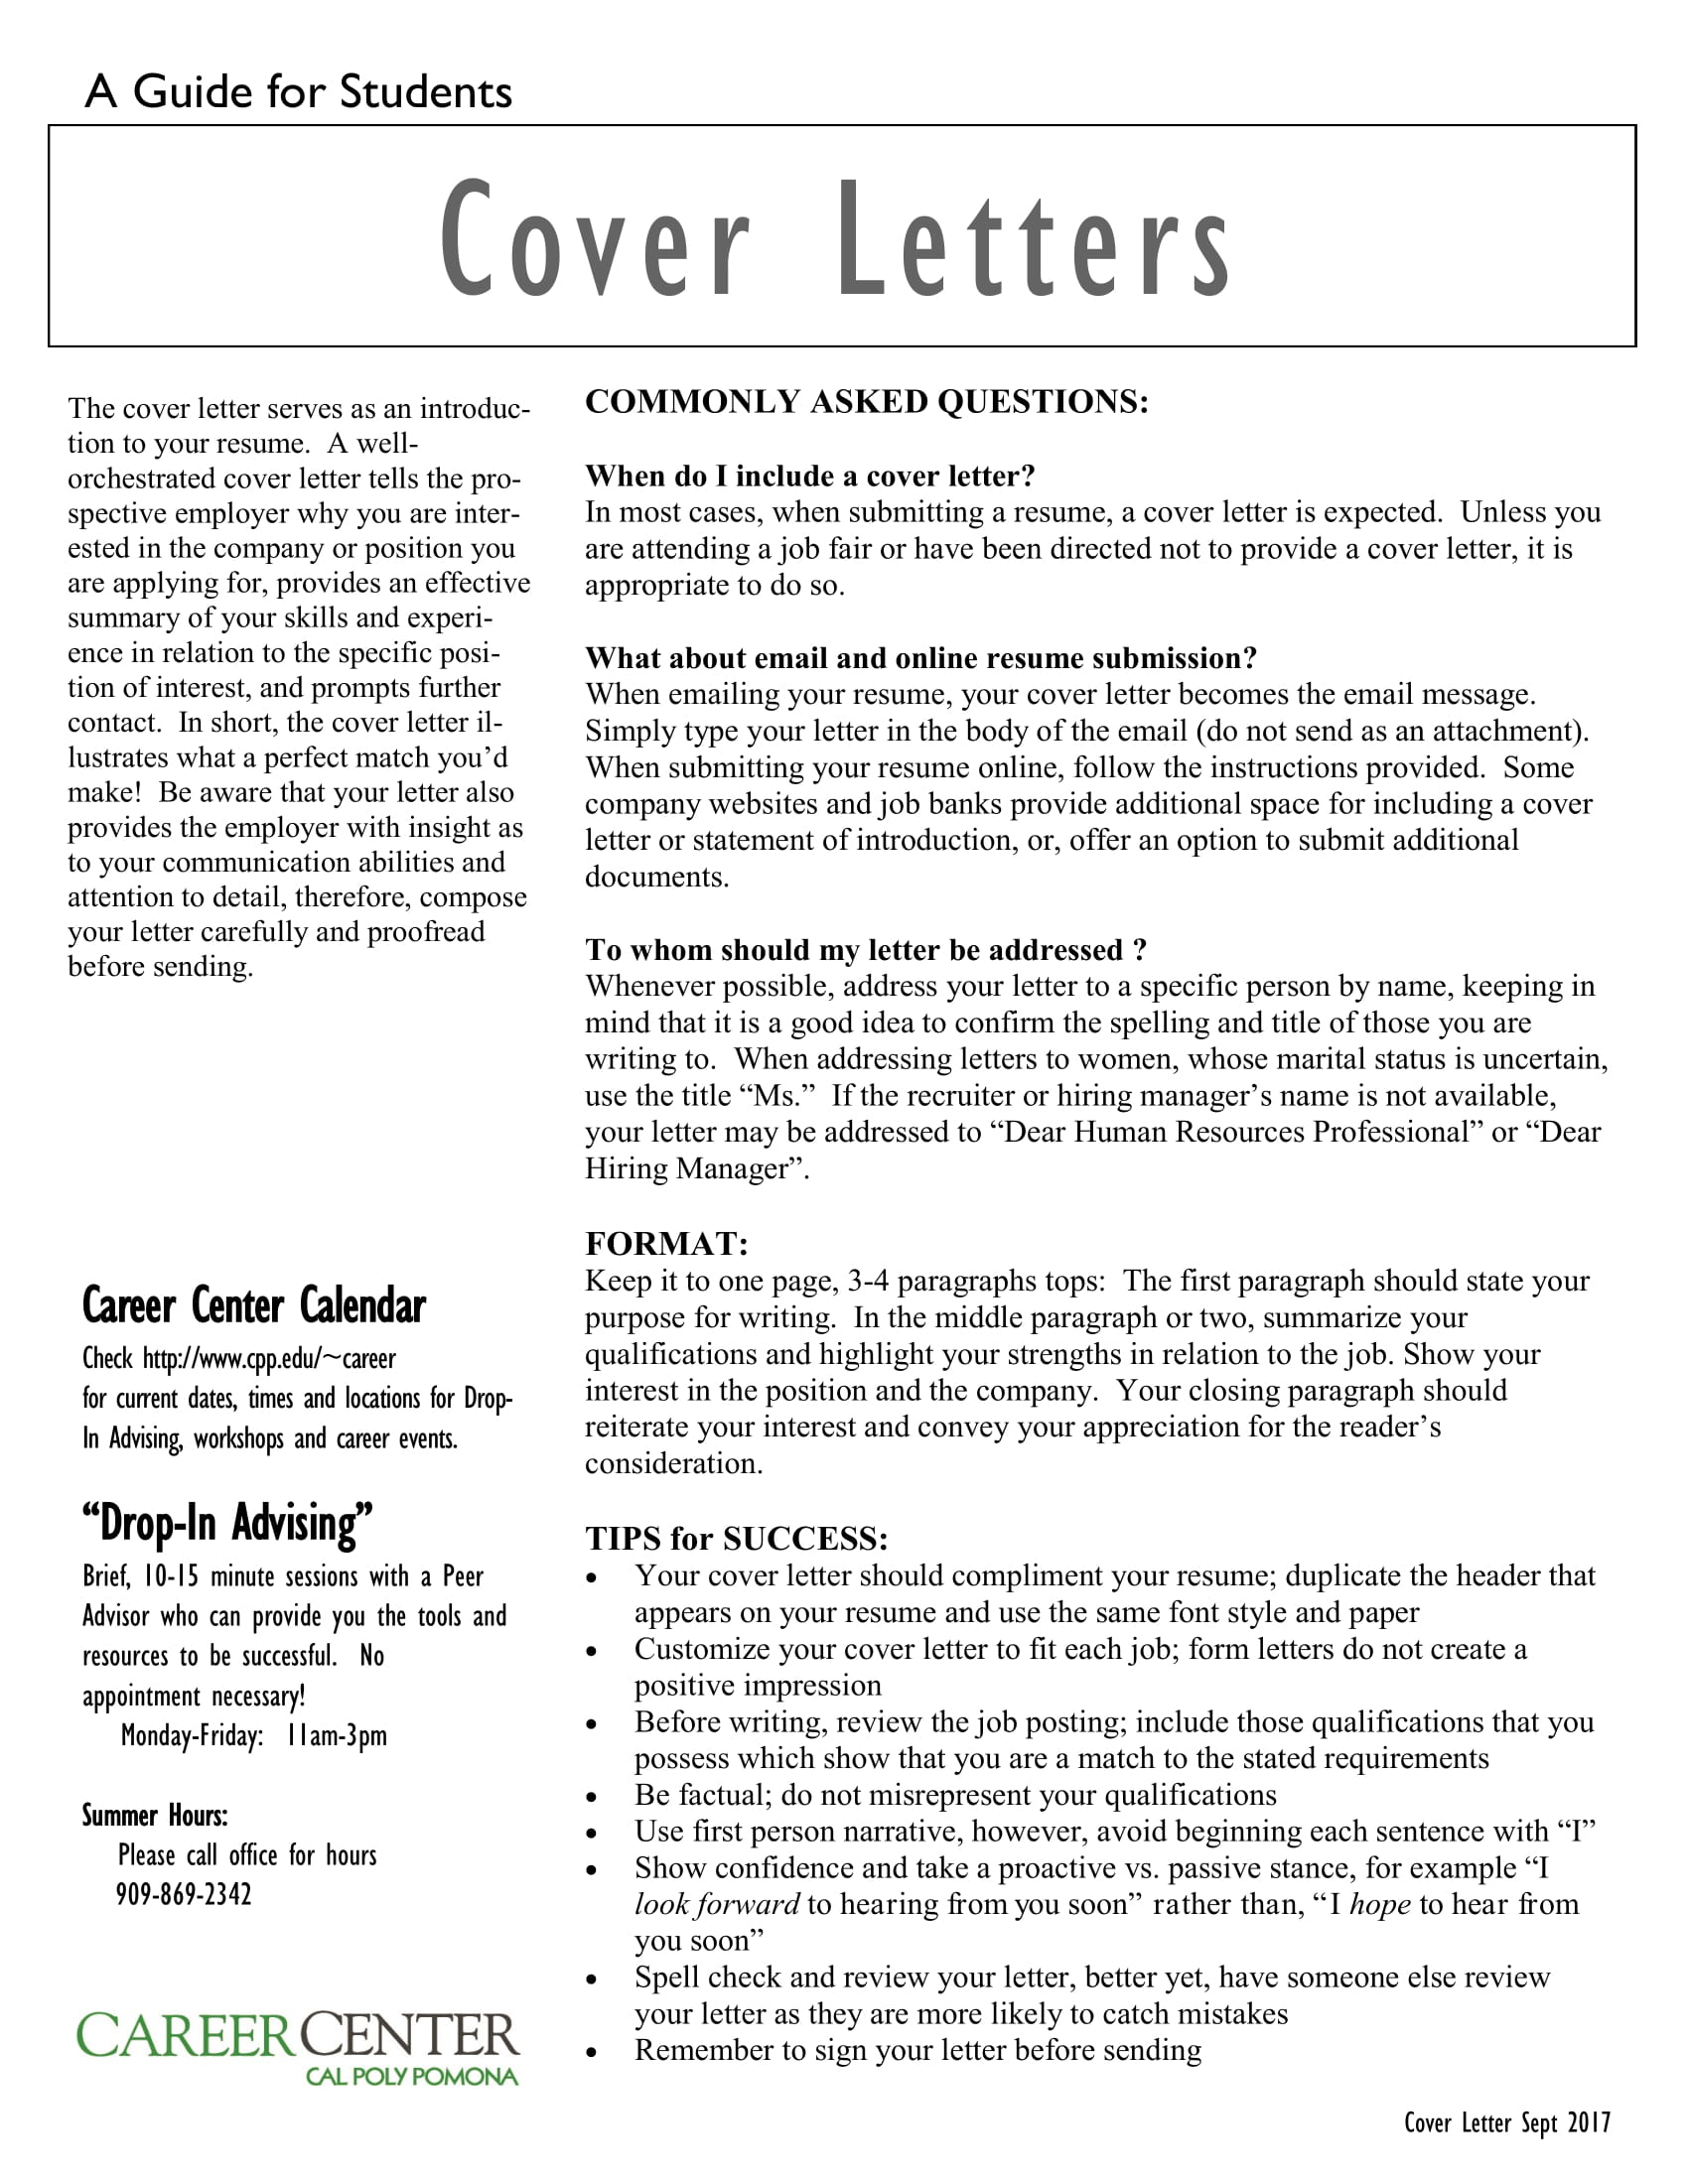 cover letters 1